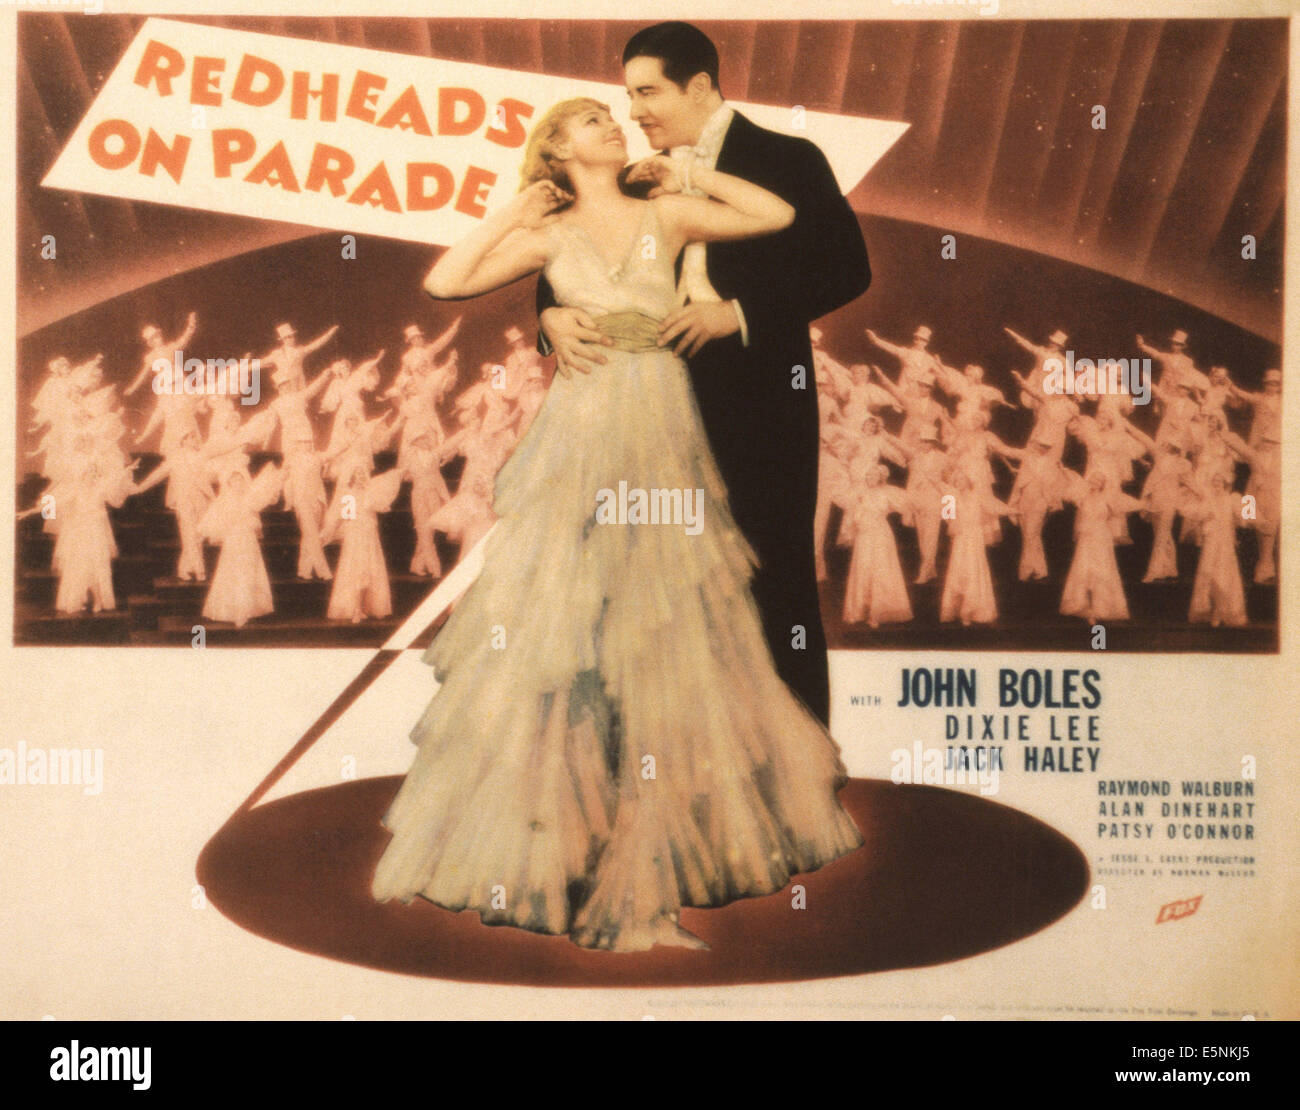 REDHEADS ON PARADE, US poster, from left: Dixie Lee, John Boles, 1935, TM & Copyright © 20th Century Fox - Stock Image